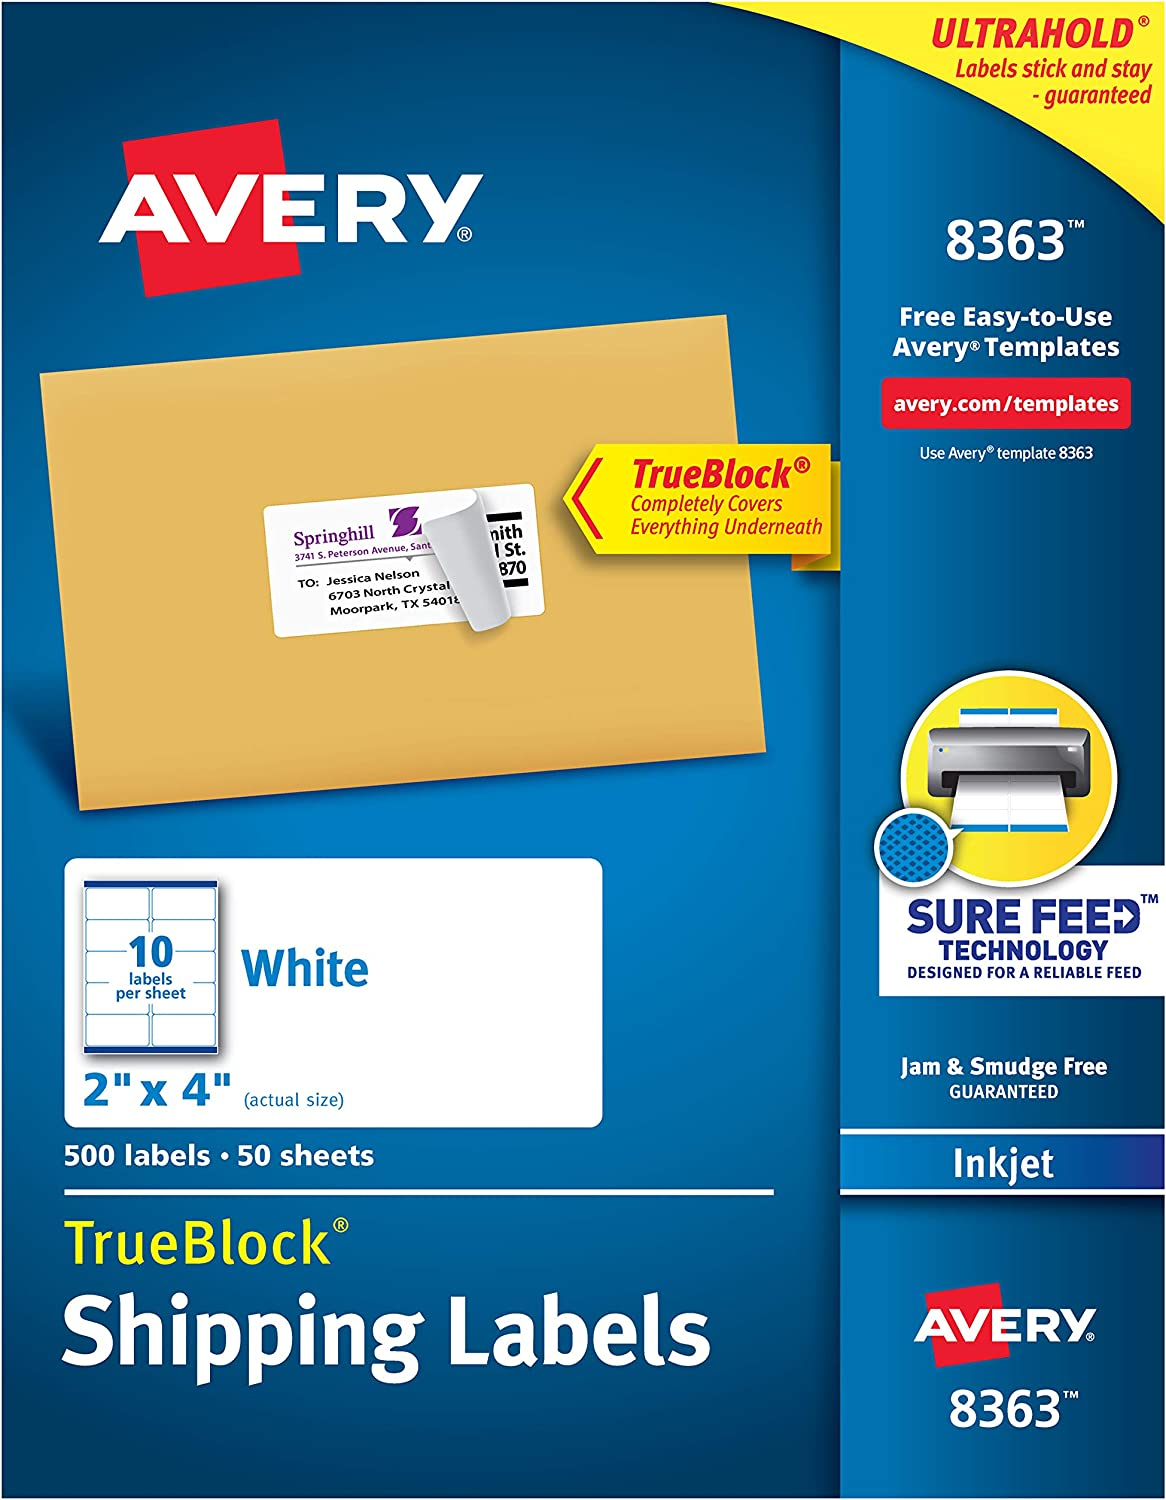 Avery Labels 2X4 Template from images-na.ssl-images-amazon.com